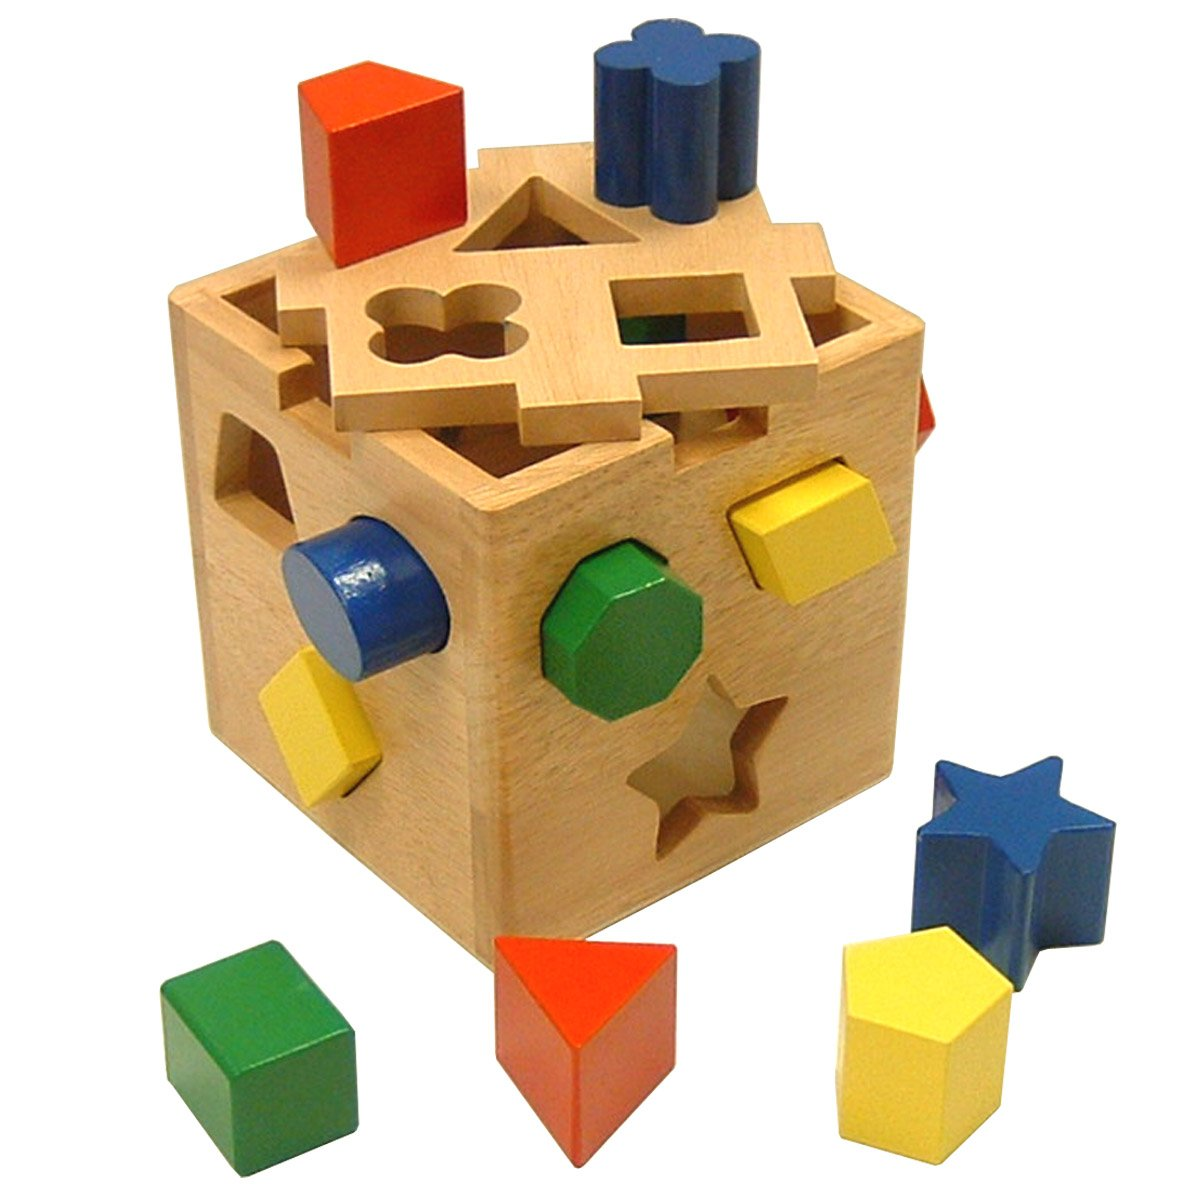 Wooden Toys For Toddlers And Kids : Playducation educational toys from kidestore